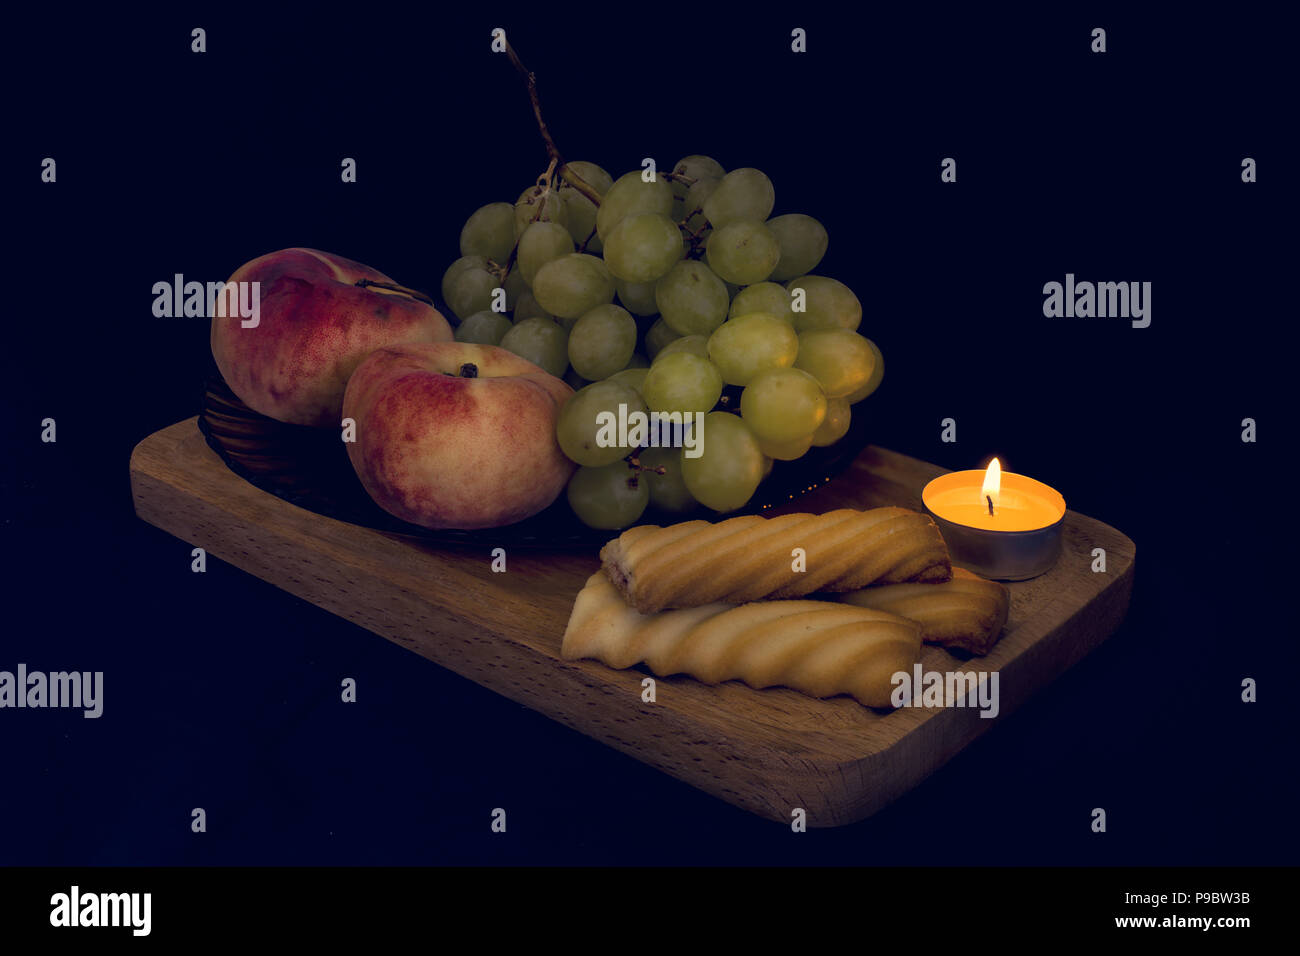 Still life from darkness. Composition with fruits, cakes and candle lighting. HD quality picture. - Stock Image